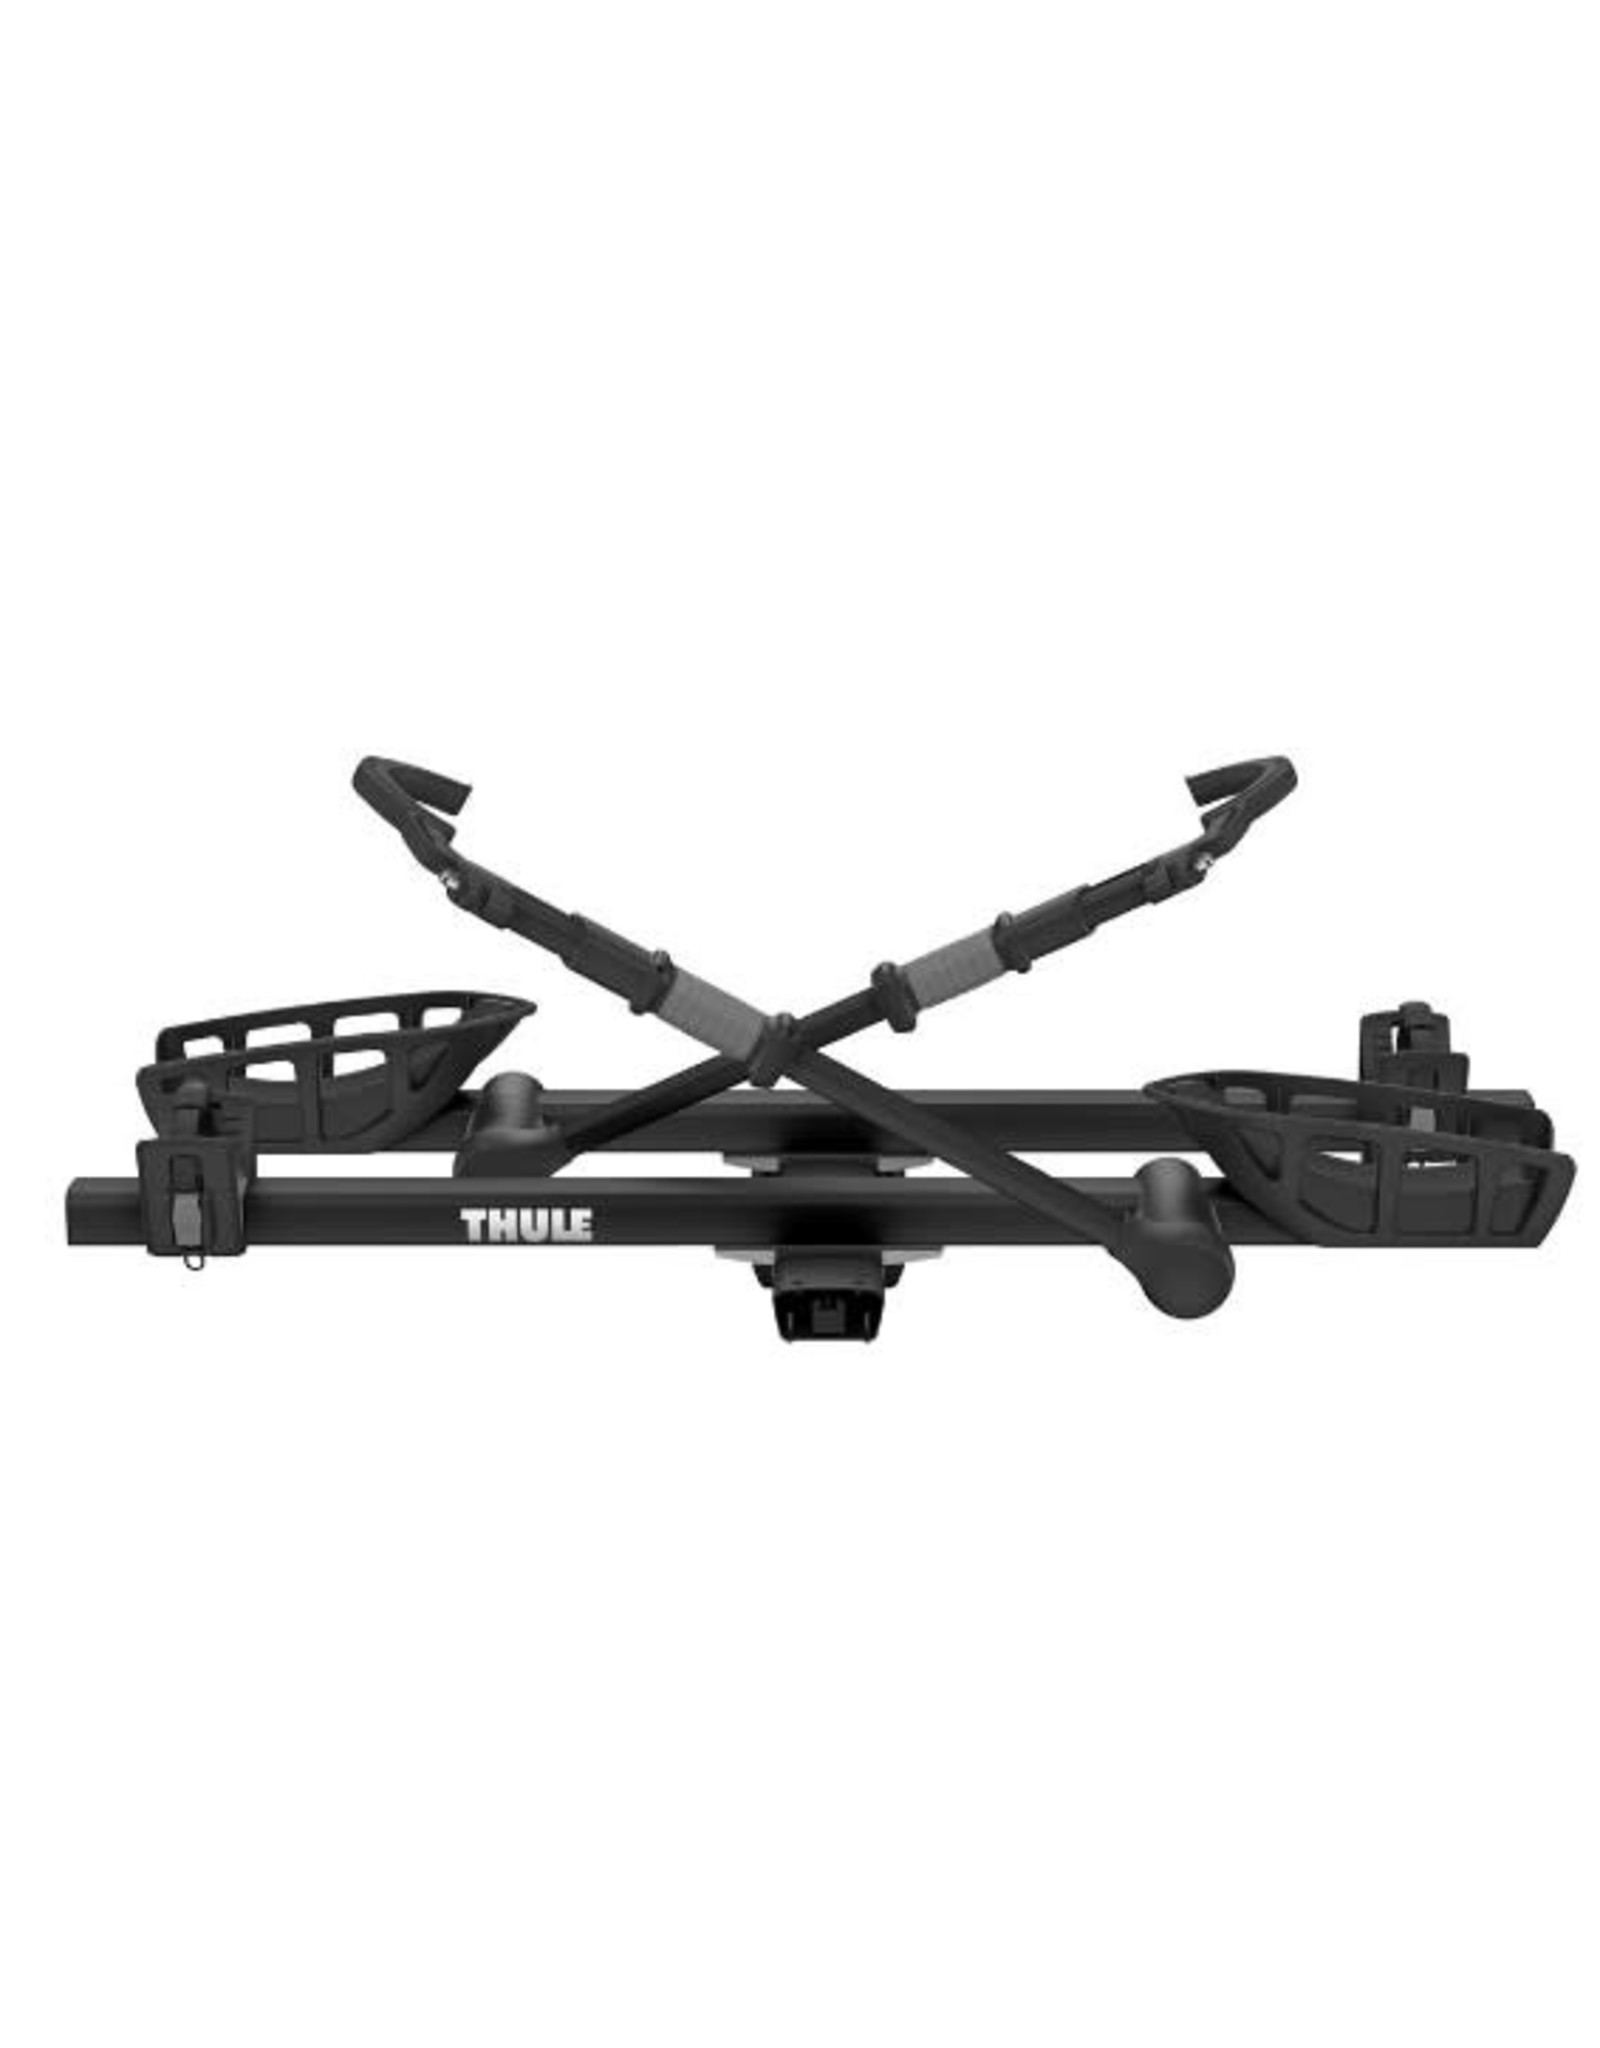 Thule Add-on bike rack Thule T2 Pro XT black 2""